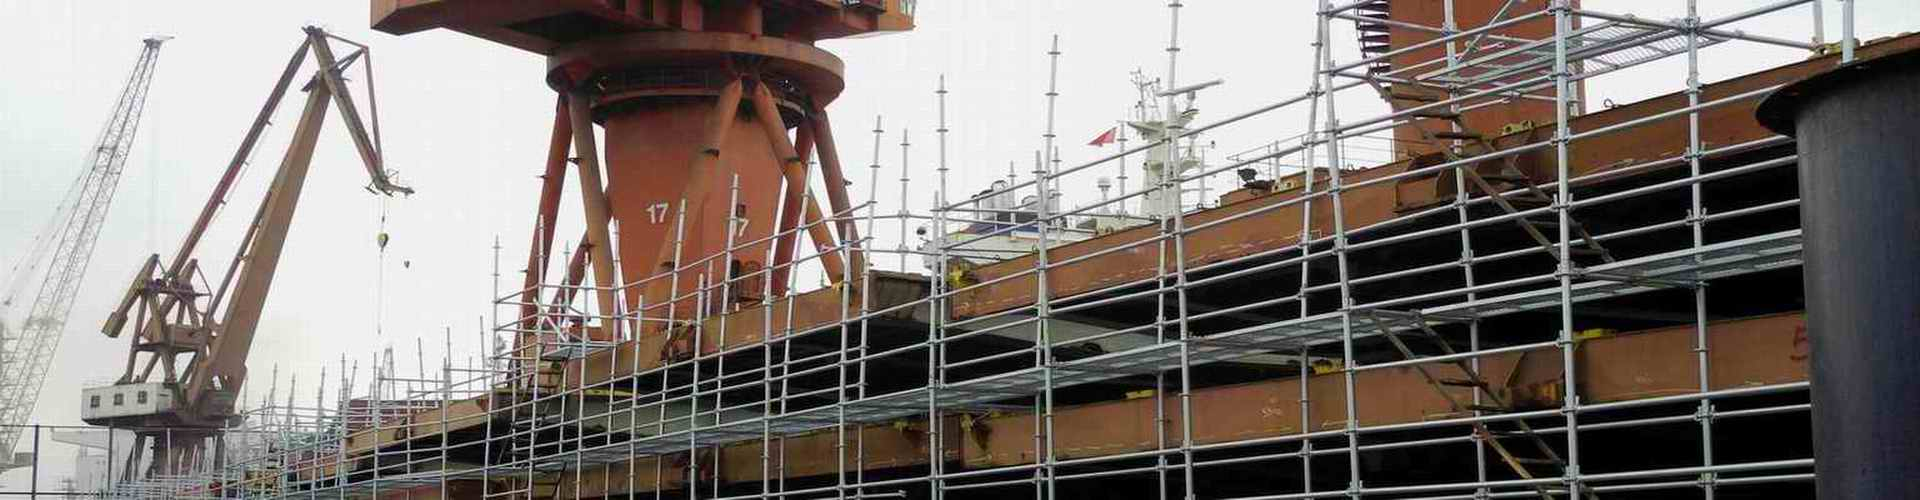 Shuangma Ring Lock Scaffolding Project